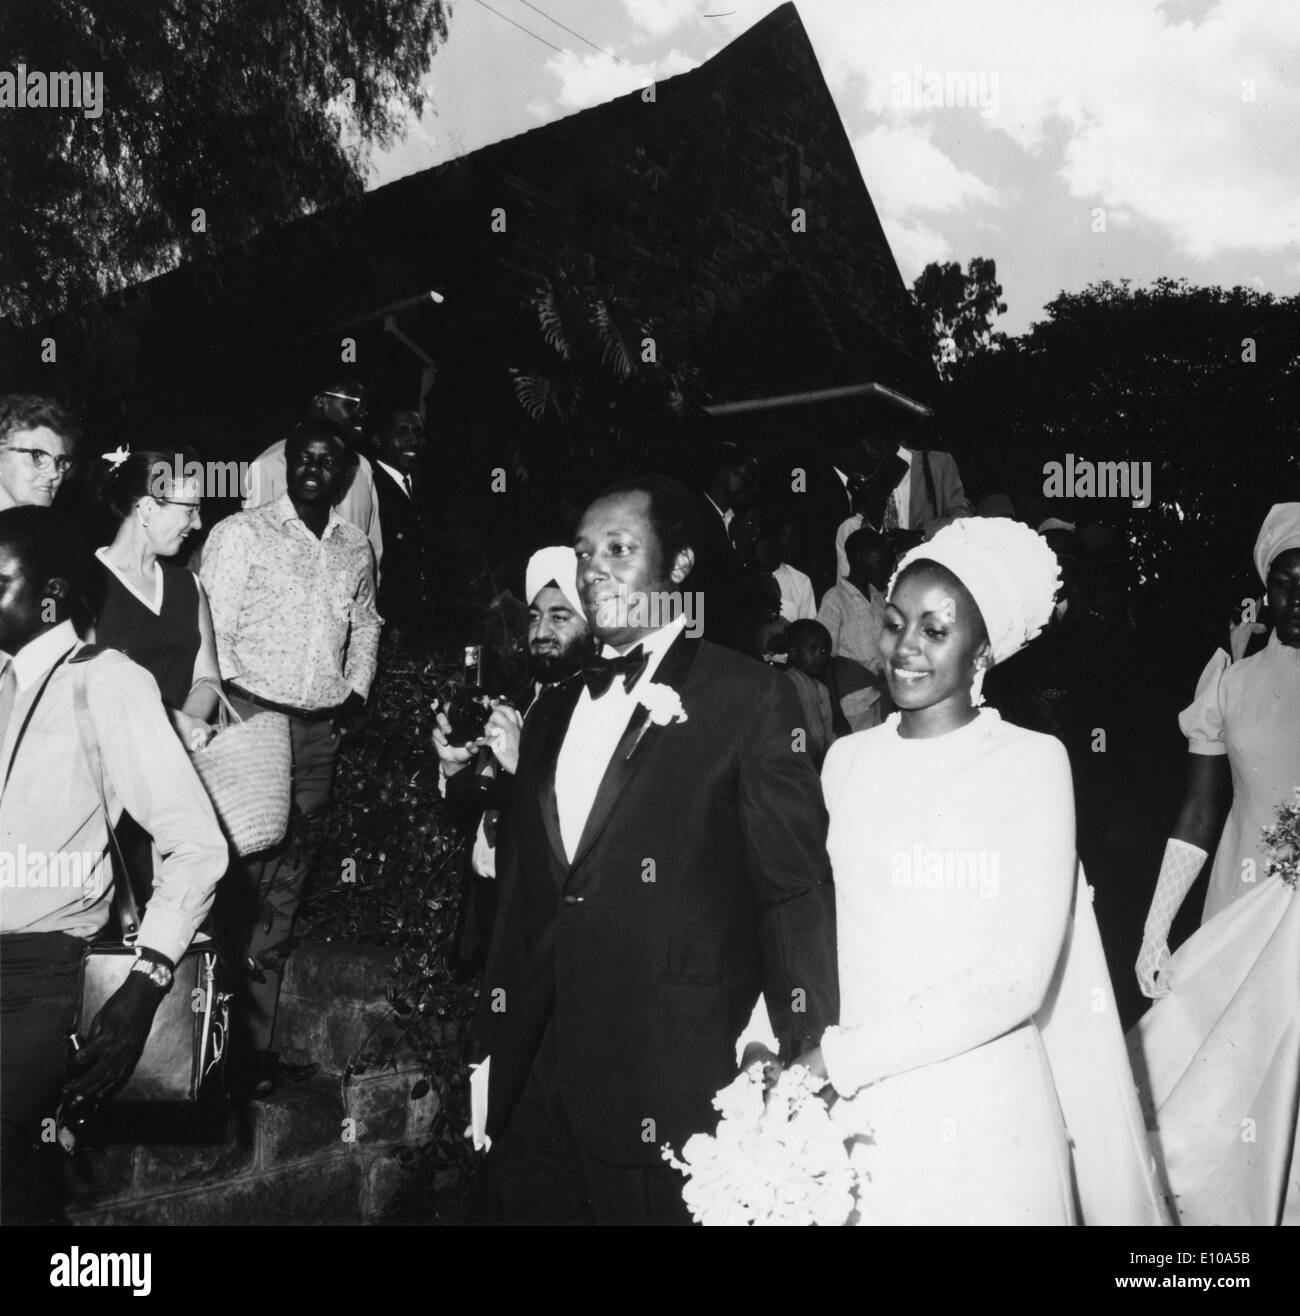 May 22, 1972 - Nairobi, Kenya - Dr. NJOROGE MUNGAI weds Miss LILIAN NJERI NJENGA at the St. Andrew's Church, the Stock Photo